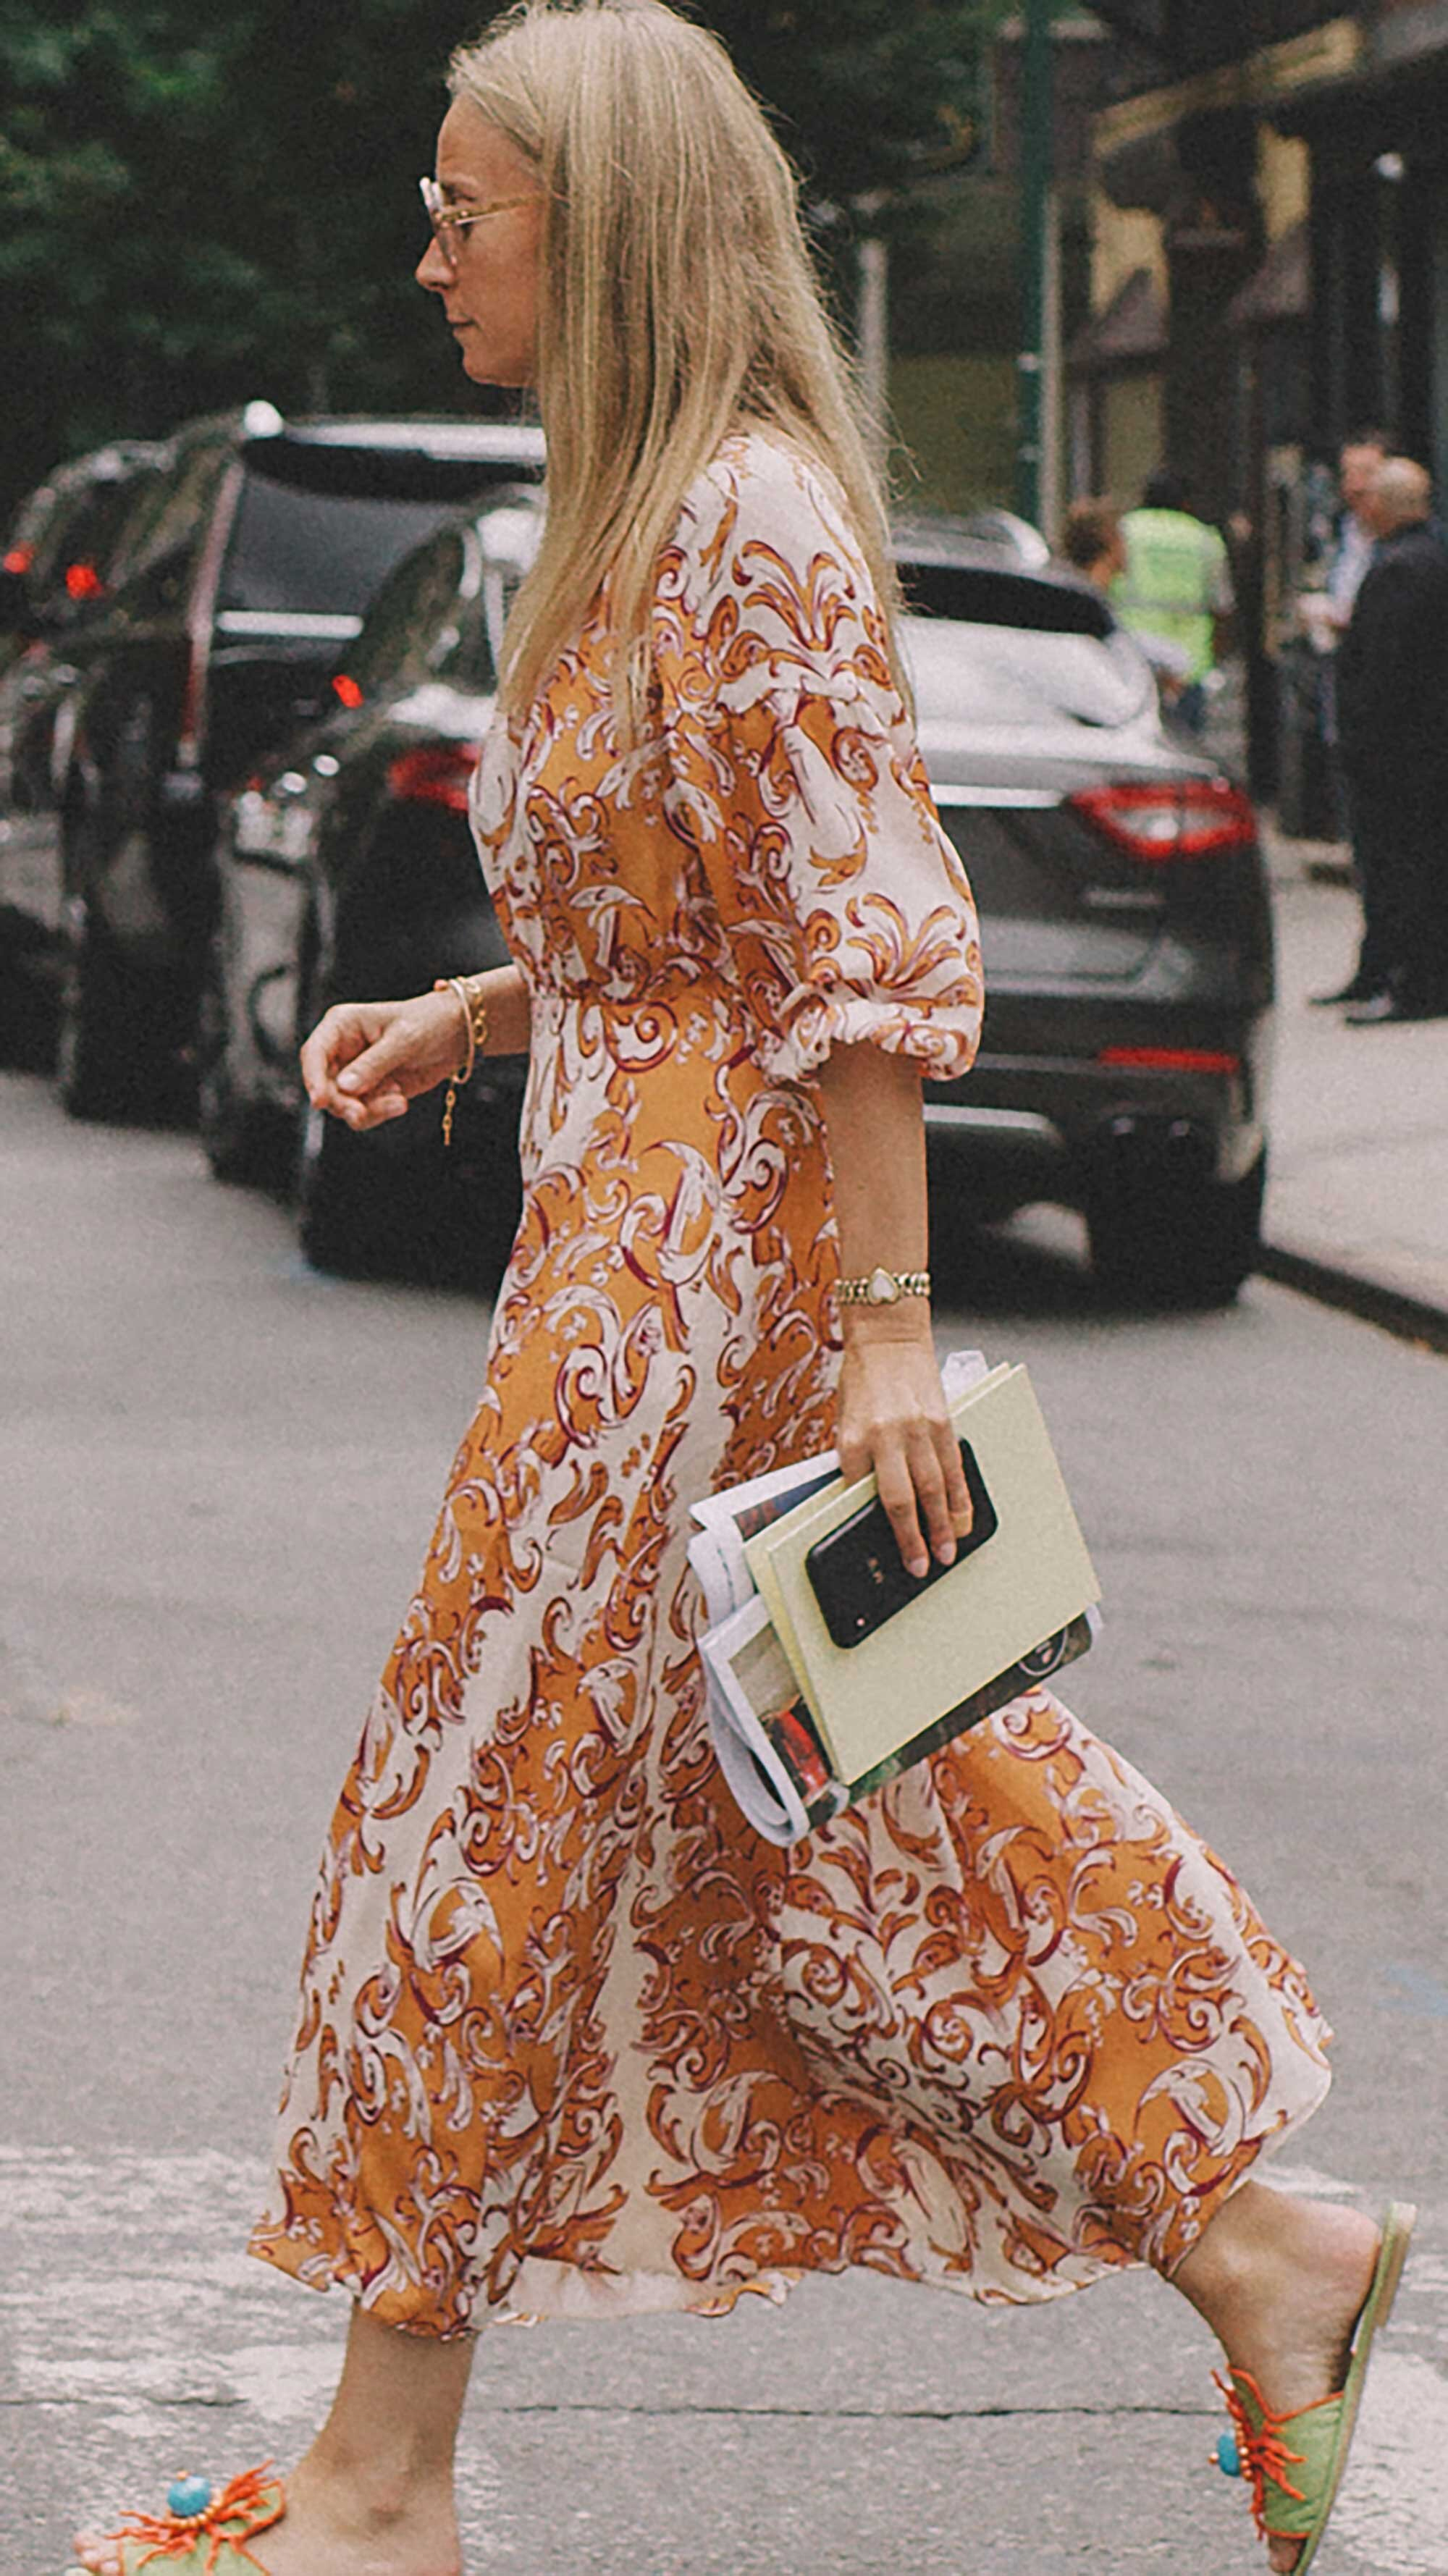 Best outfits of New York Fashion Week street style -46.jpg